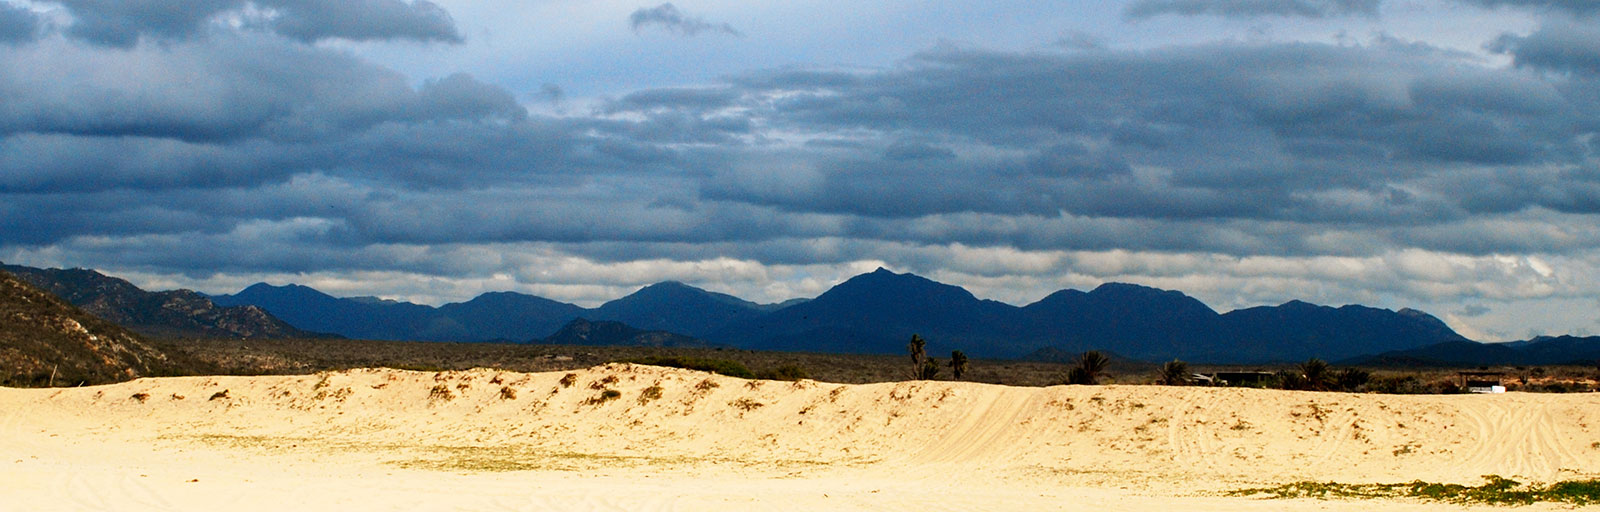 Hiking & Yoga Retreat in Mexico: Beach Dune and Mountains